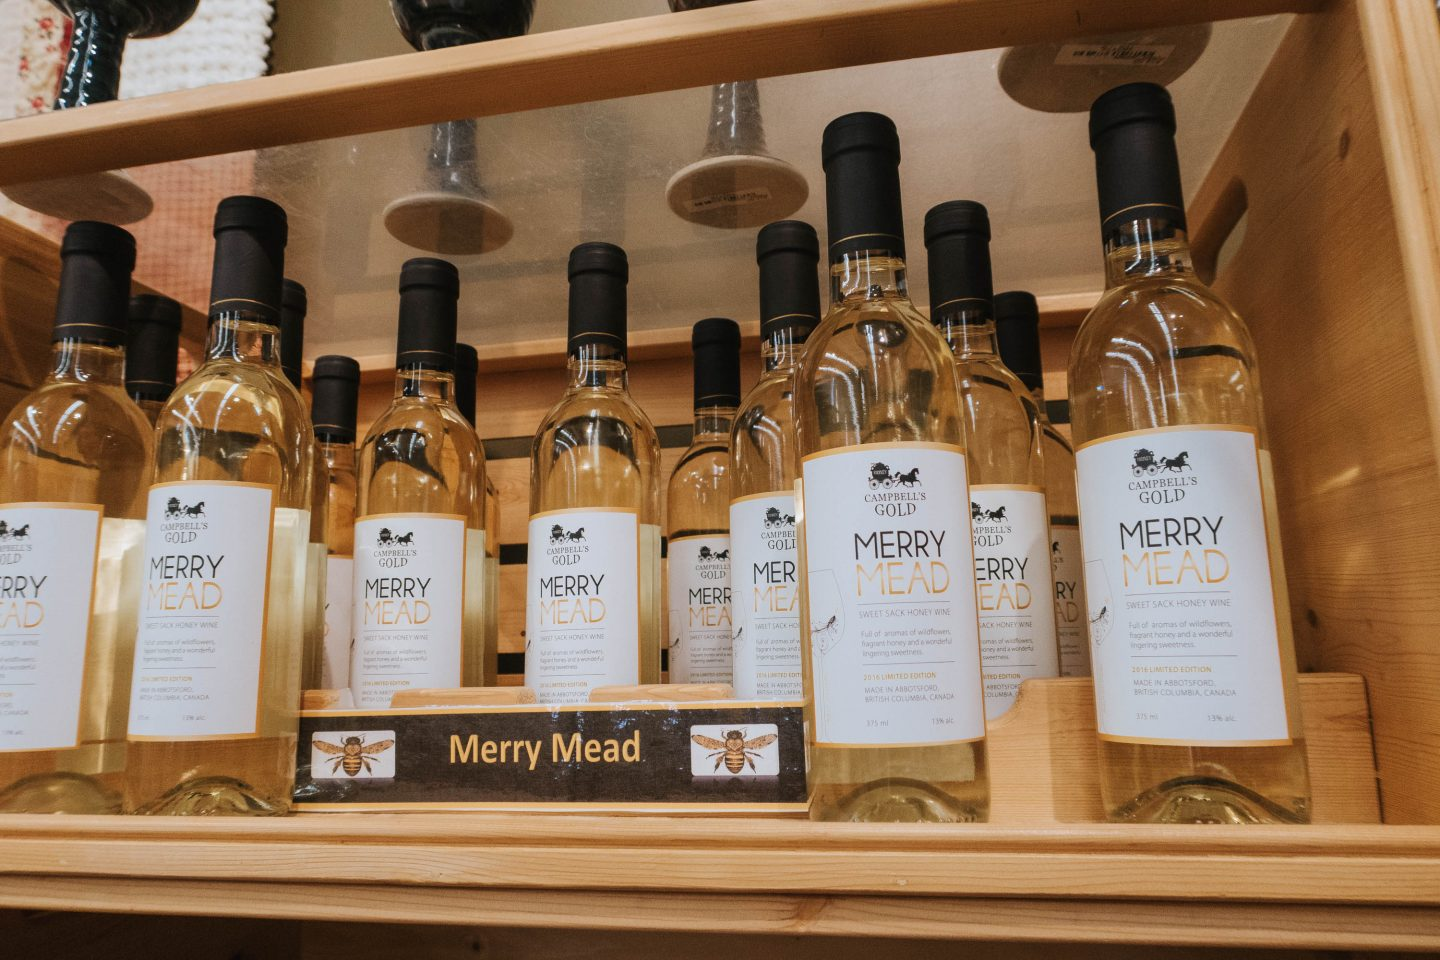 Merry Mead honey wine at Campbell's Gold and Honey Meadery